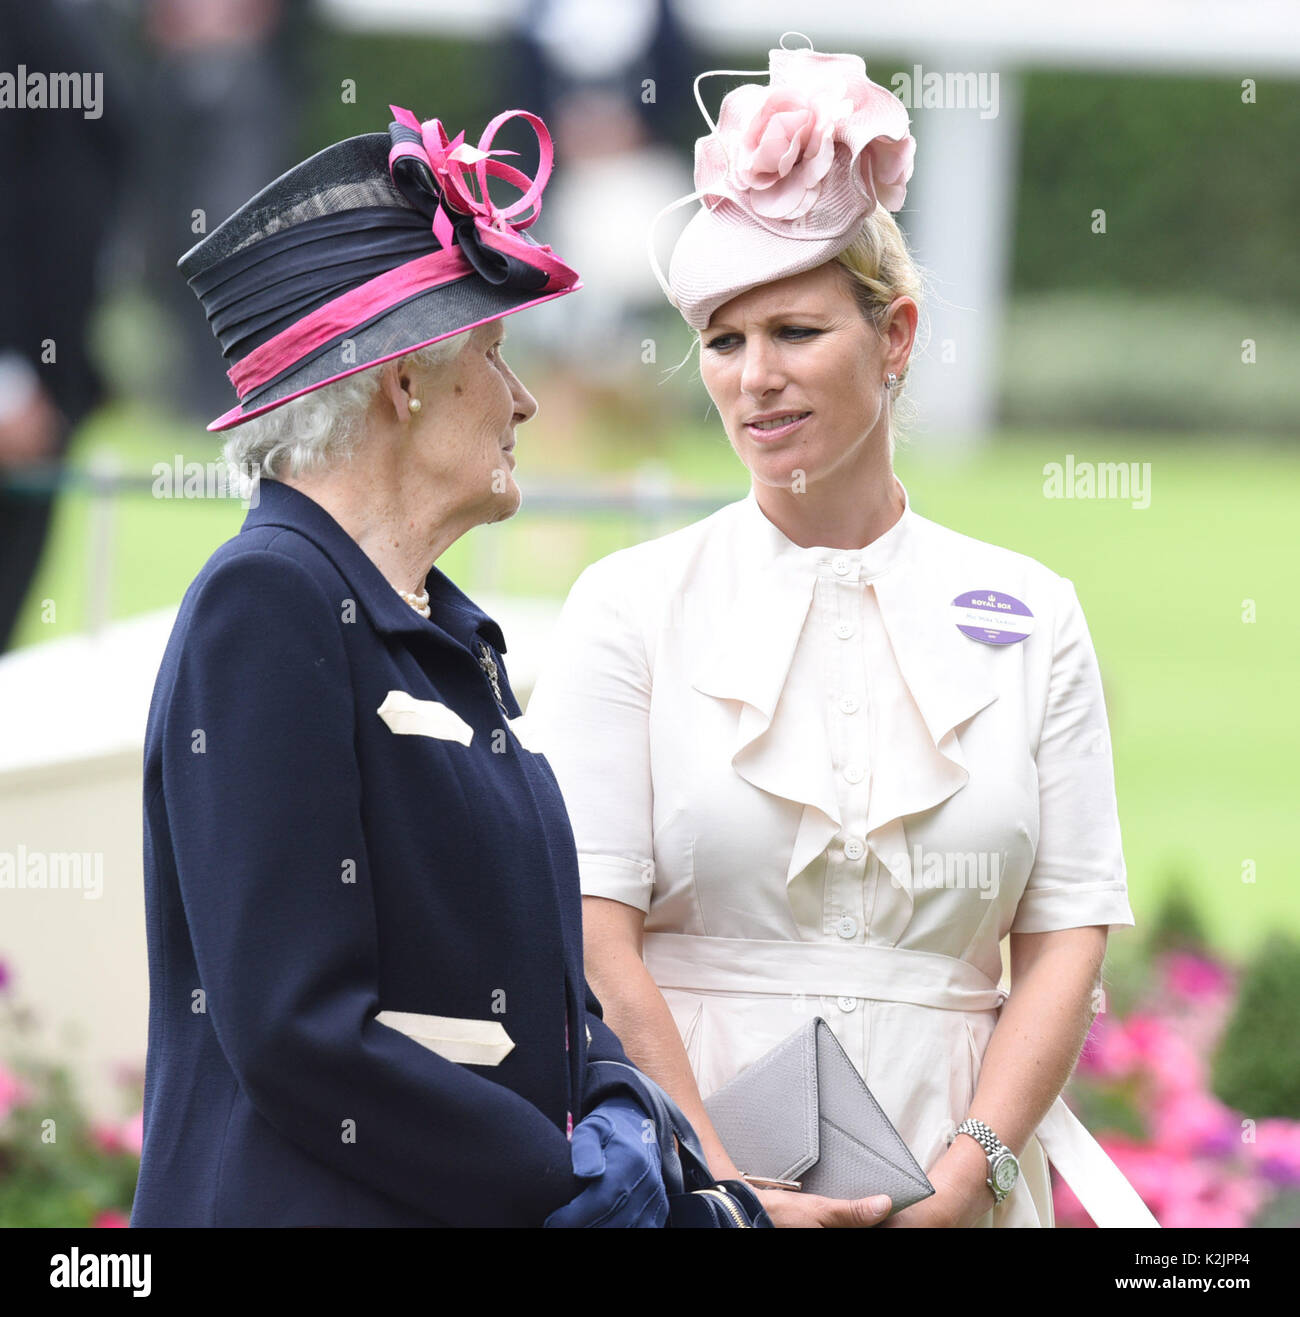 Photo Must Be Credited ©Alpha Press 079965 22 06 2017 Zara Phillips Tindall 82b04bca56a3